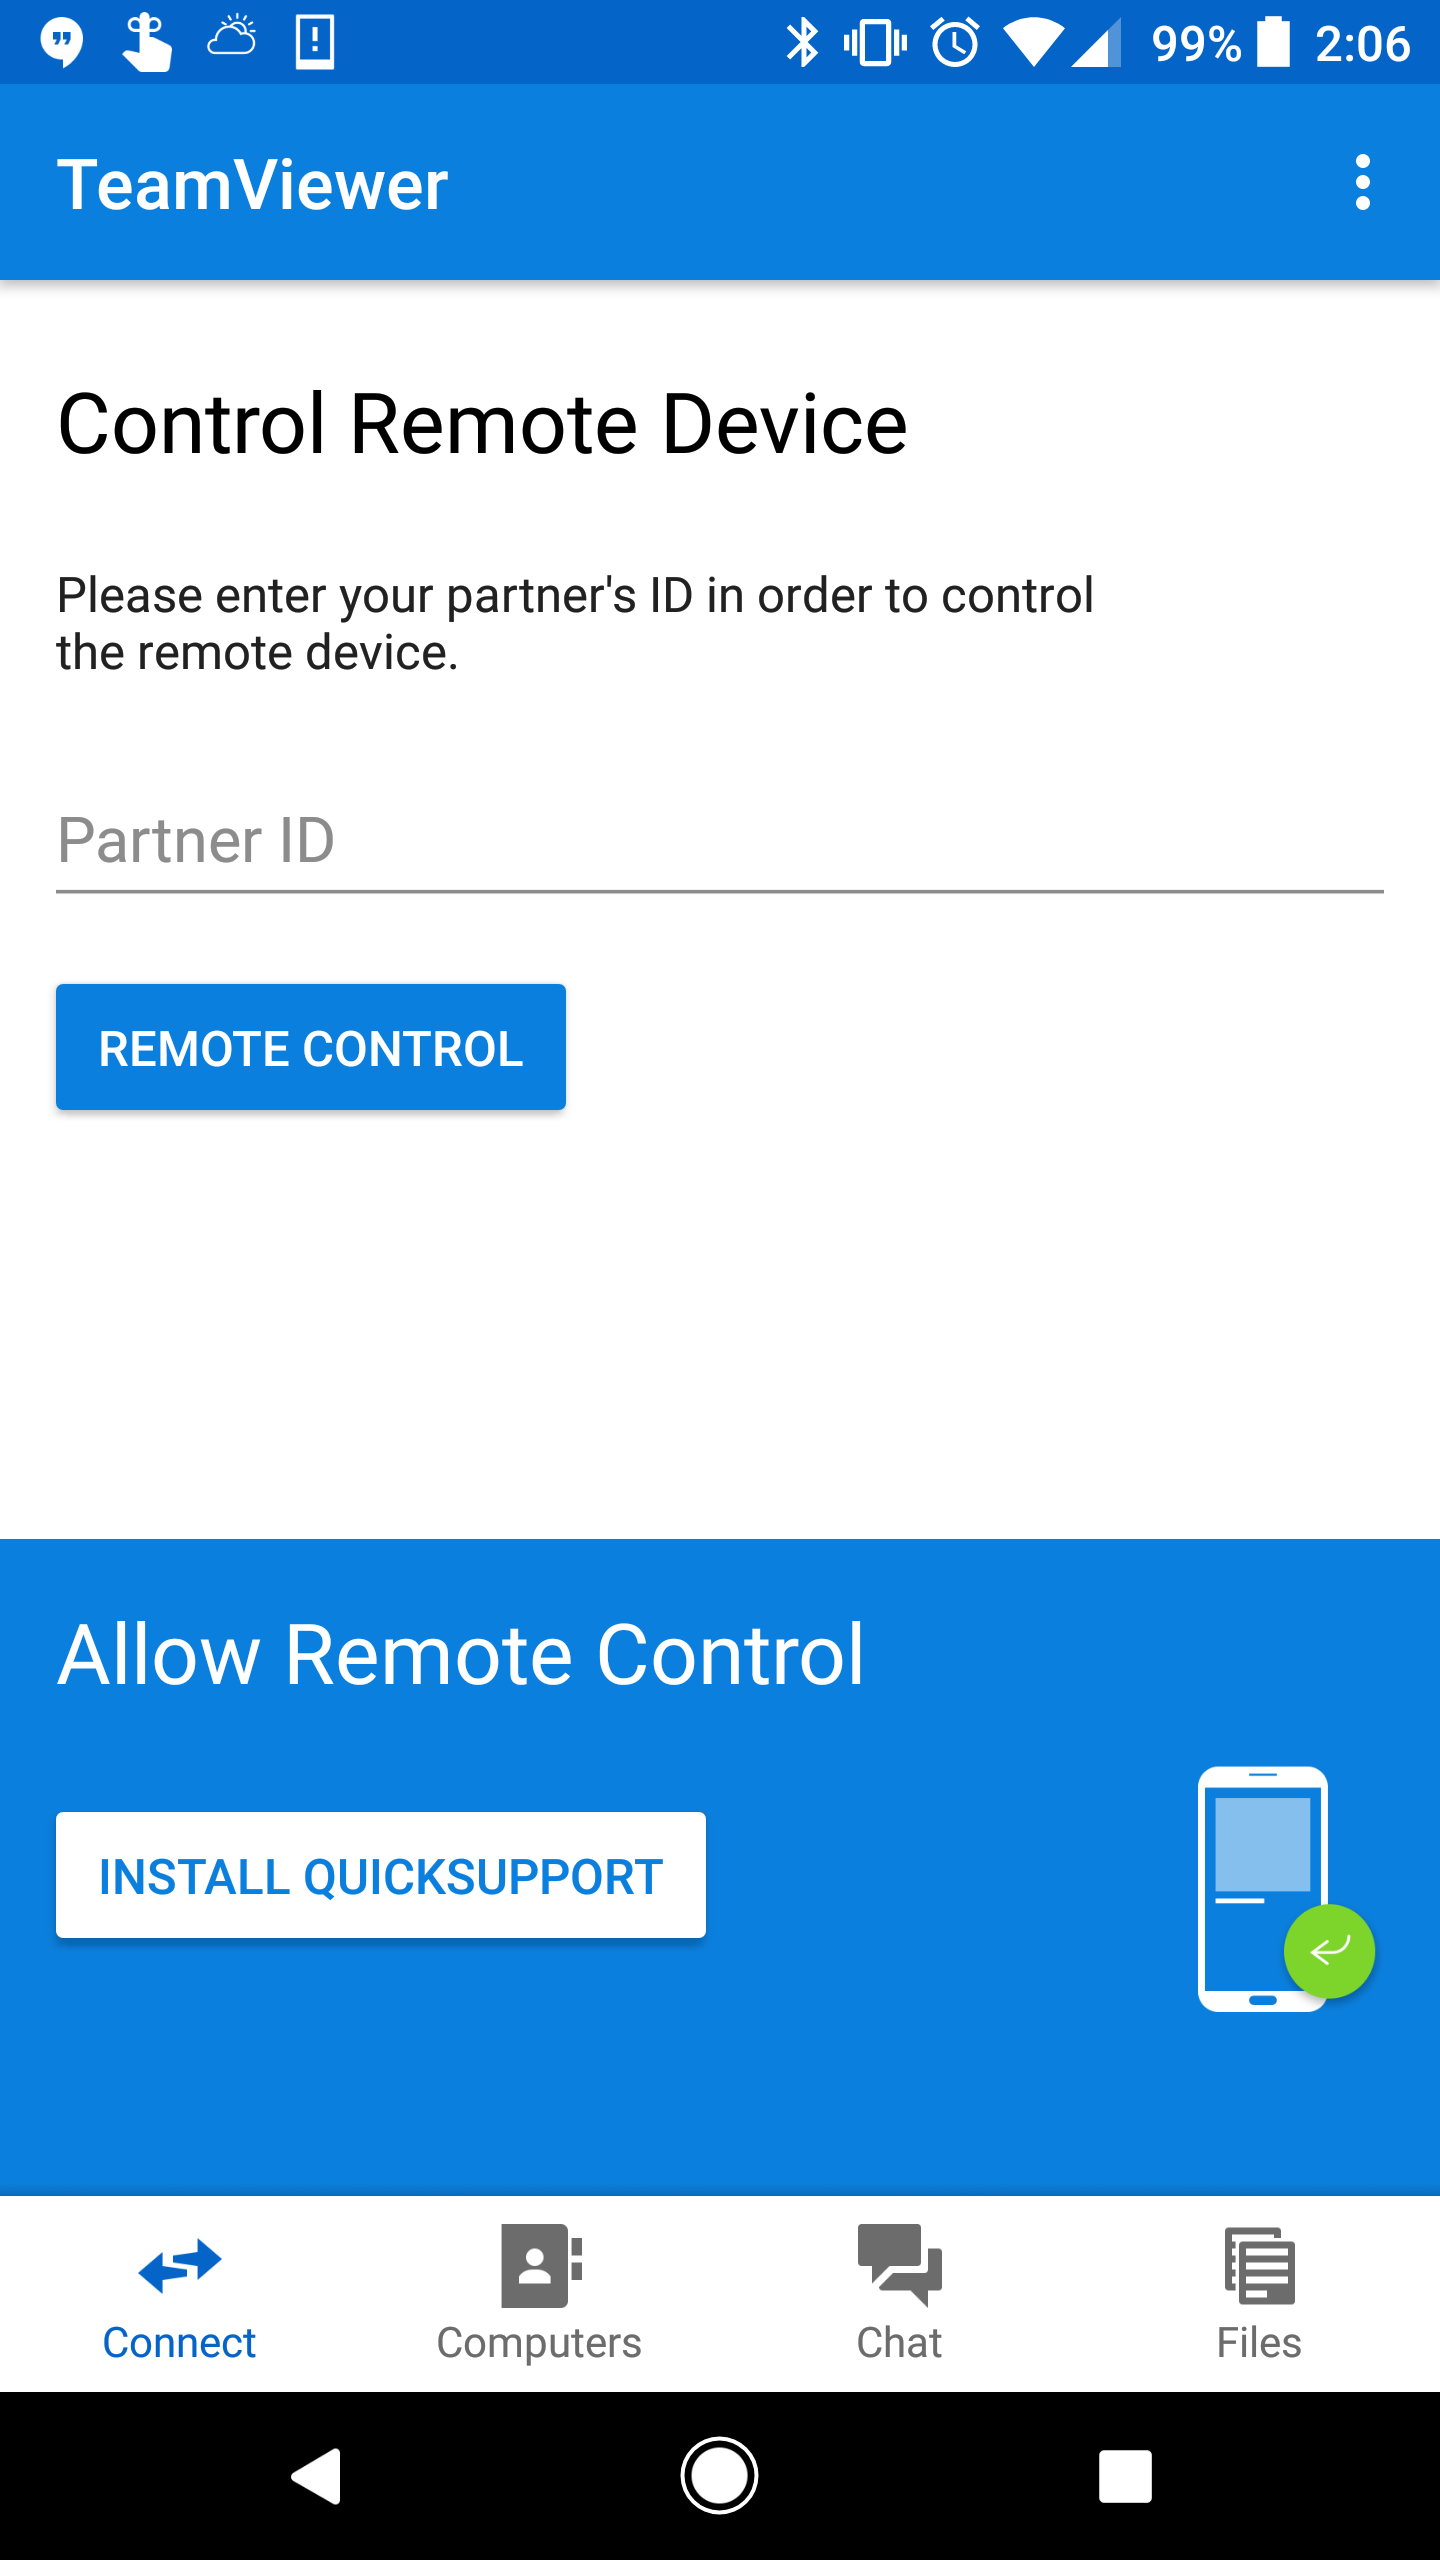 TeamViewer 13 adds support for connecting to iOS devices and